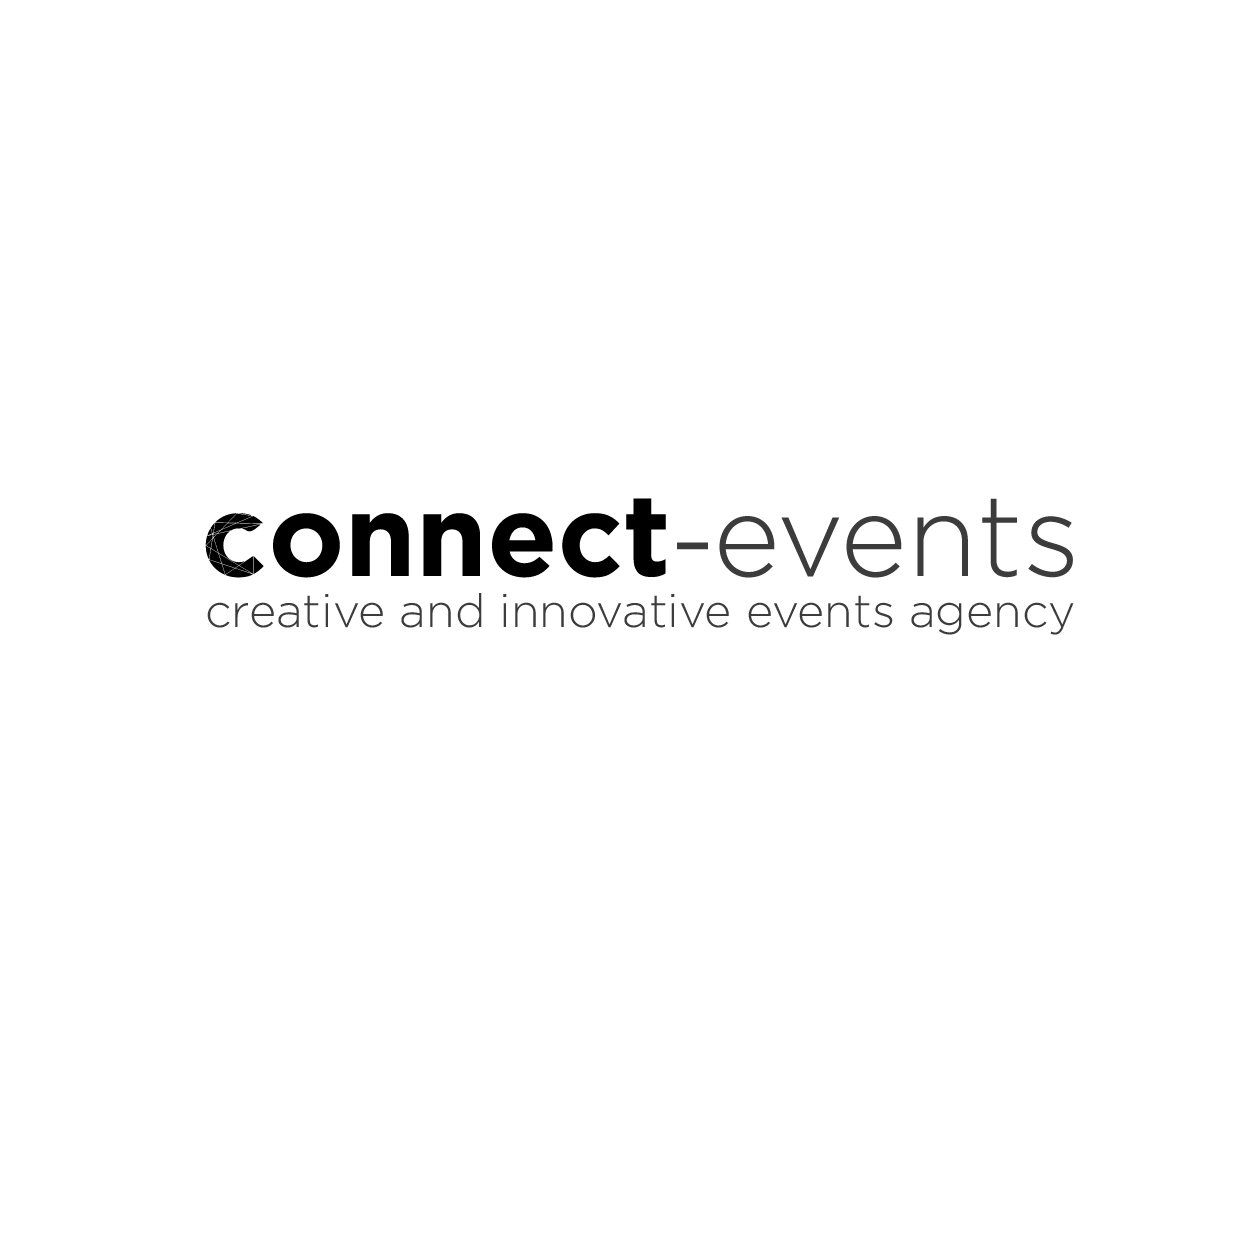 logo connect-events